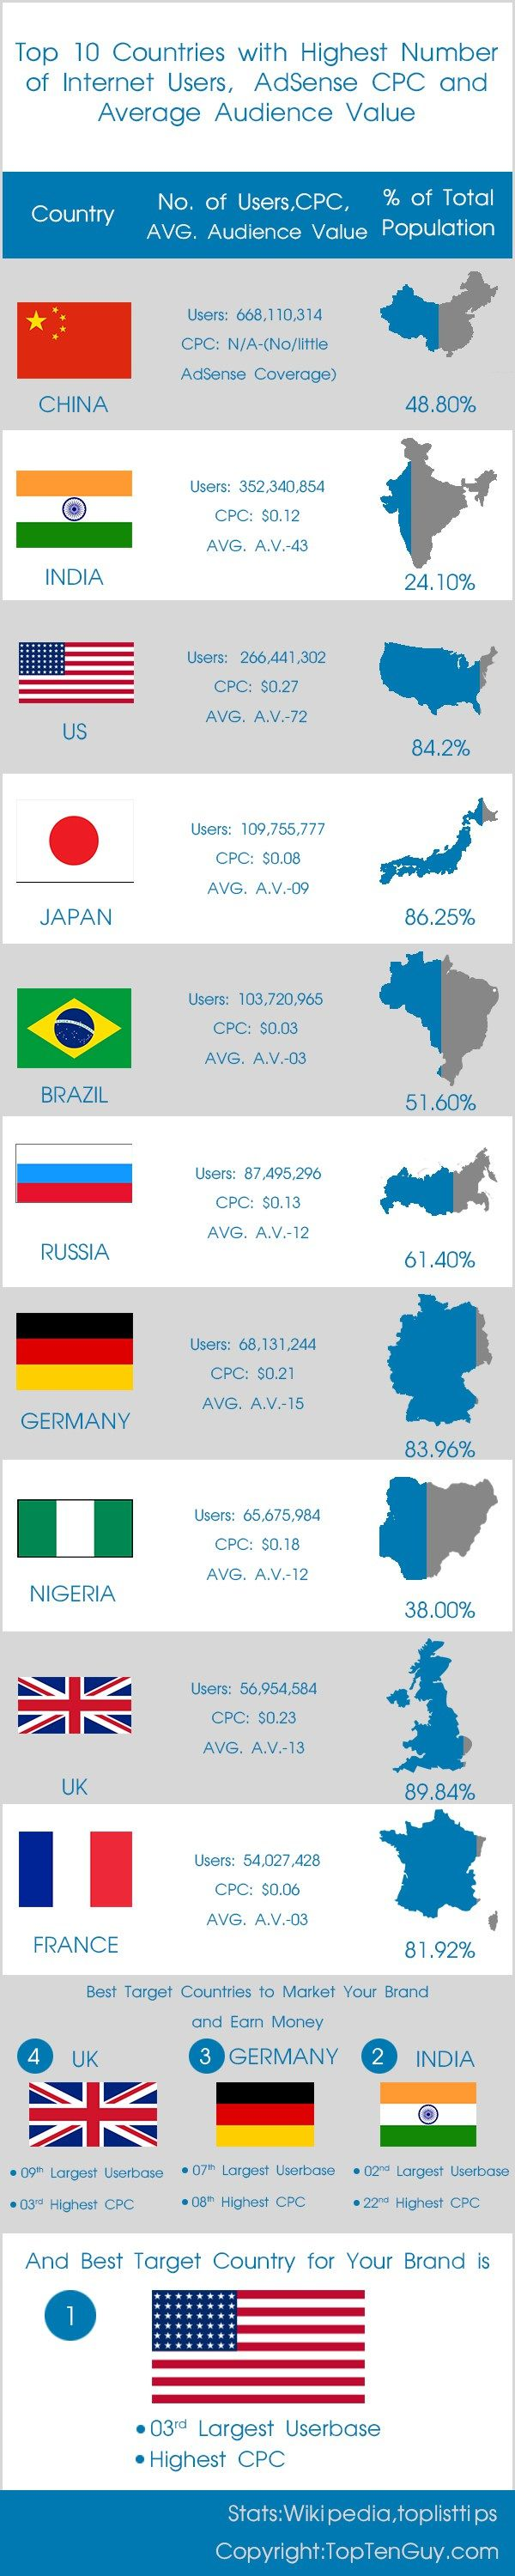 Top 10 Countries with Most Internet Users, AdSense CPC and Average Audience Value #Infographic